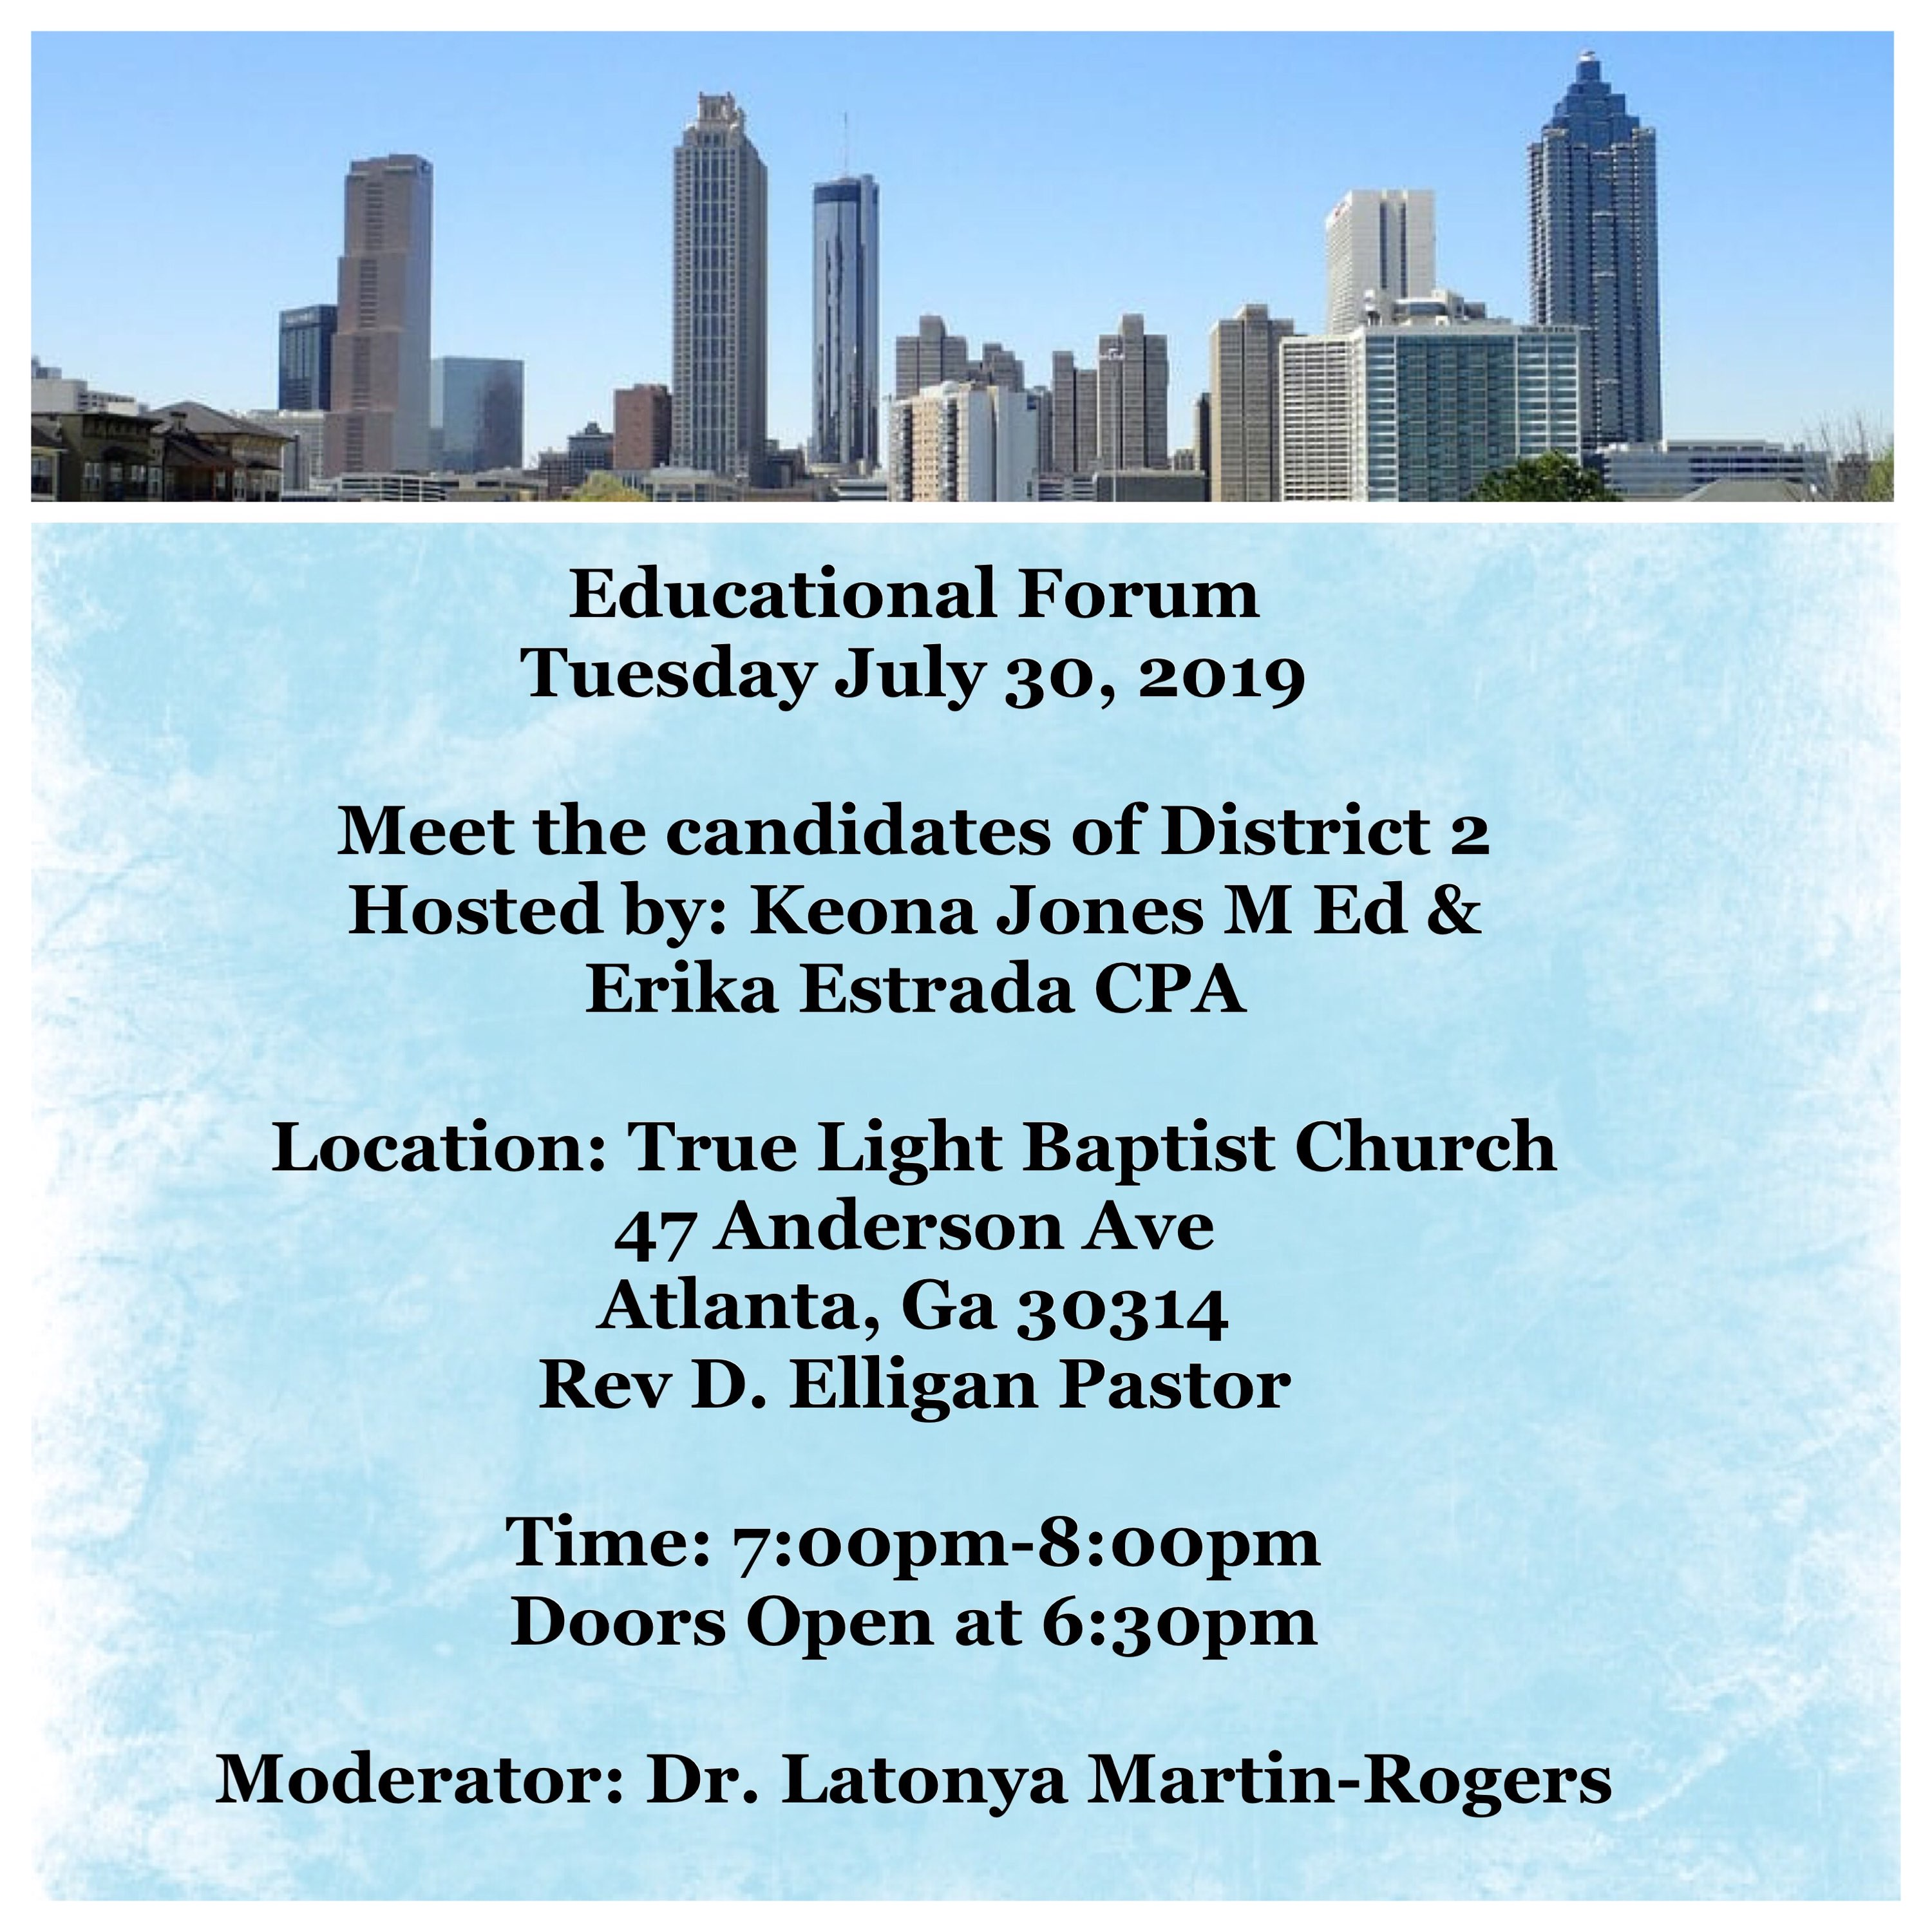 Educational Forum - July 2019